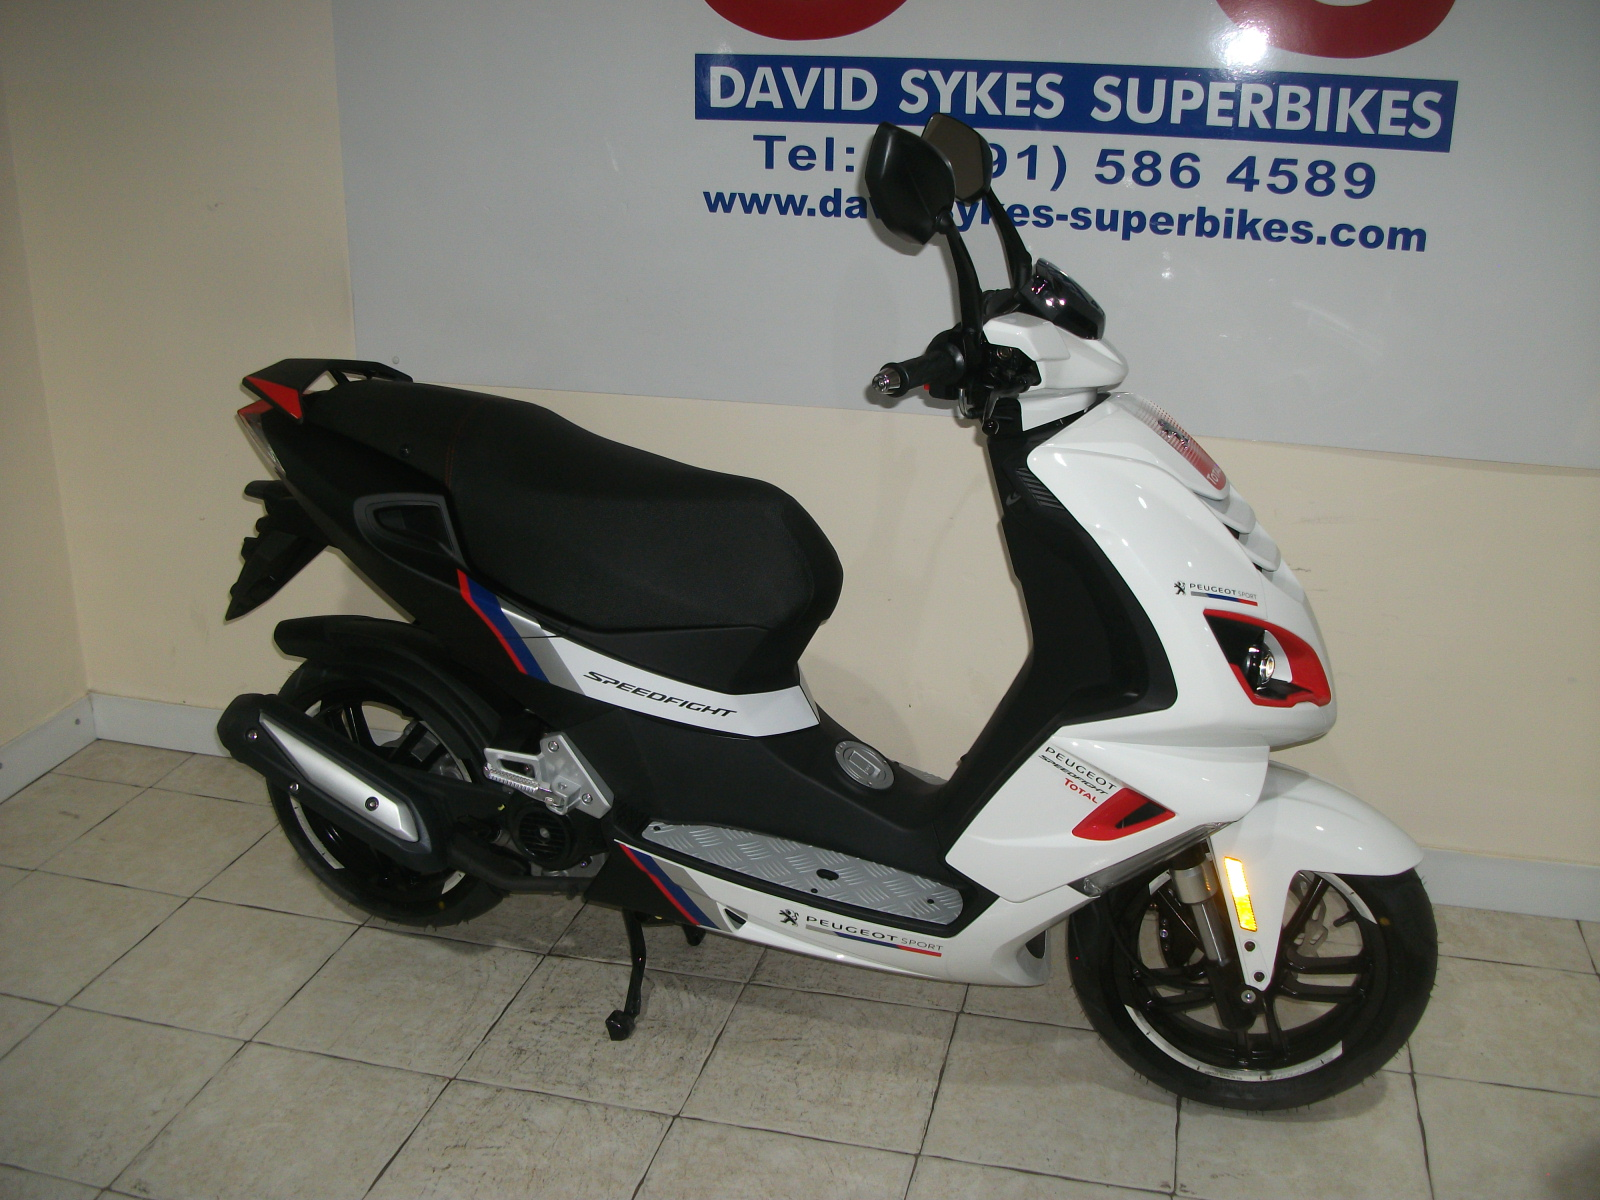 peugeot speedfight 125 race team new david sykes superbikes. Black Bedroom Furniture Sets. Home Design Ideas